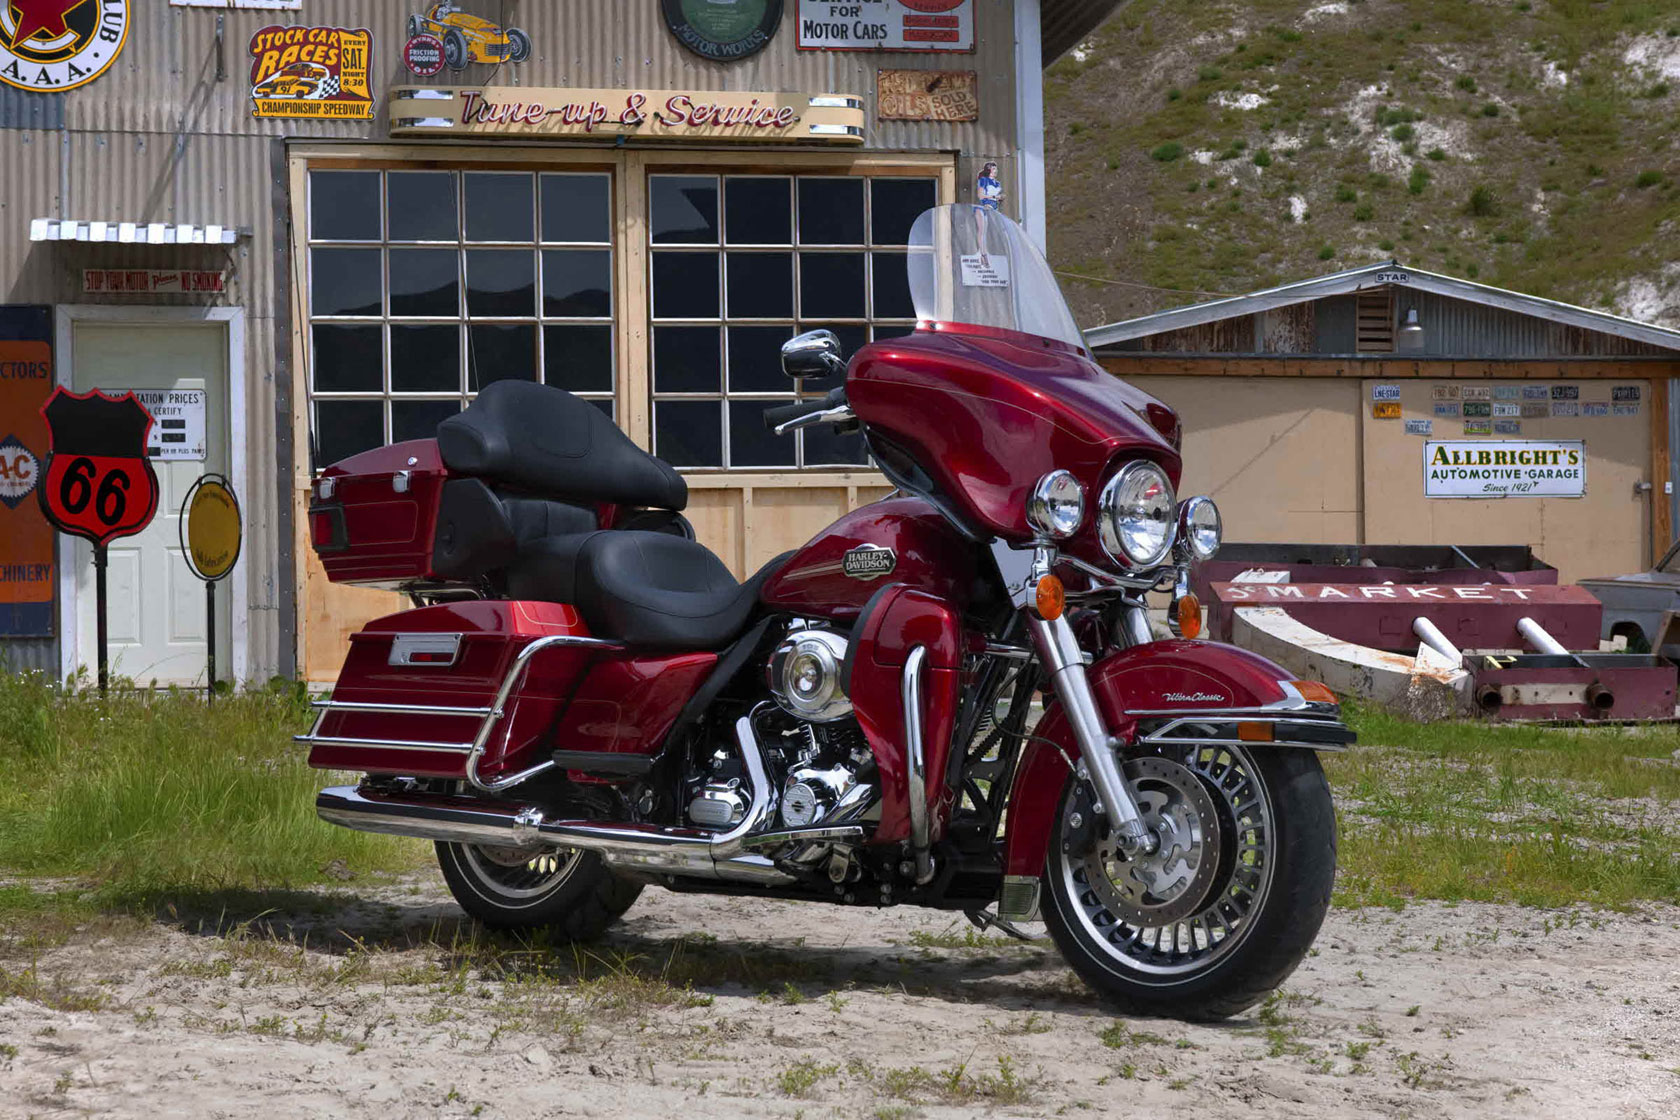 Outstanding 2005 Harley Davidson Flhtcui Ultra Classic Electra Glide Unemploymentrelief Wooden Chair Designs For Living Room Unemploymentrelieforg